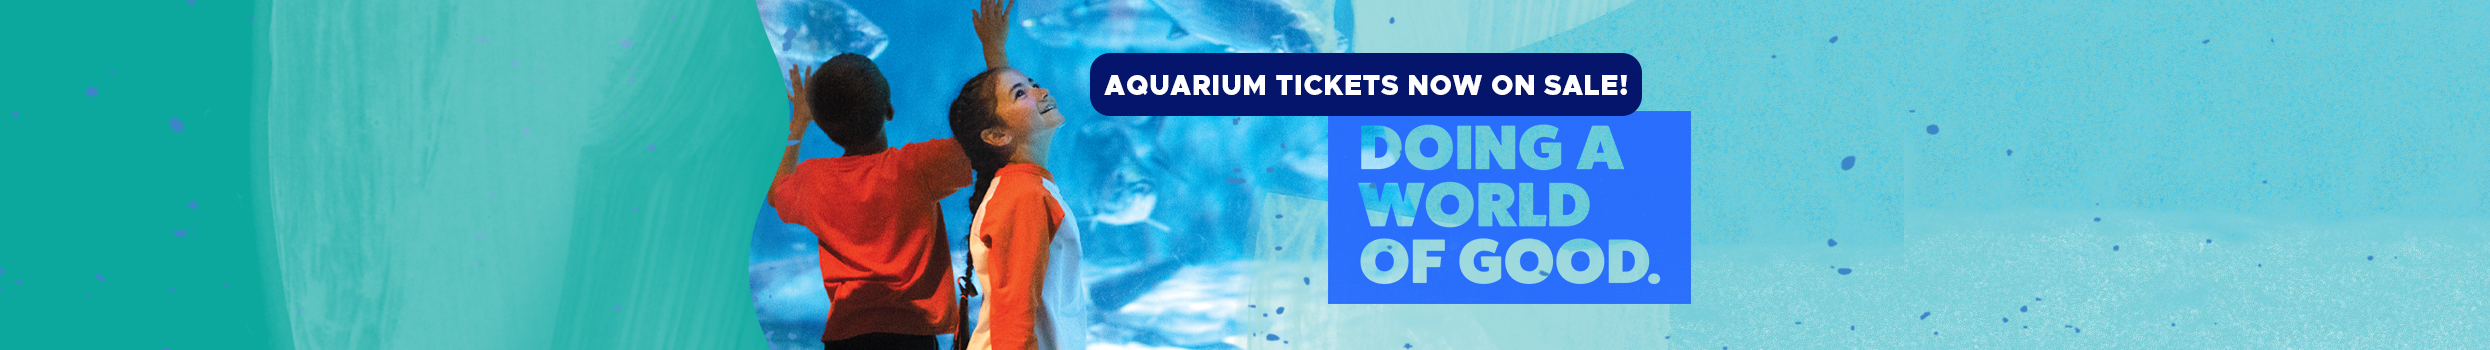 recovery-aquarium-2490-tickets-long